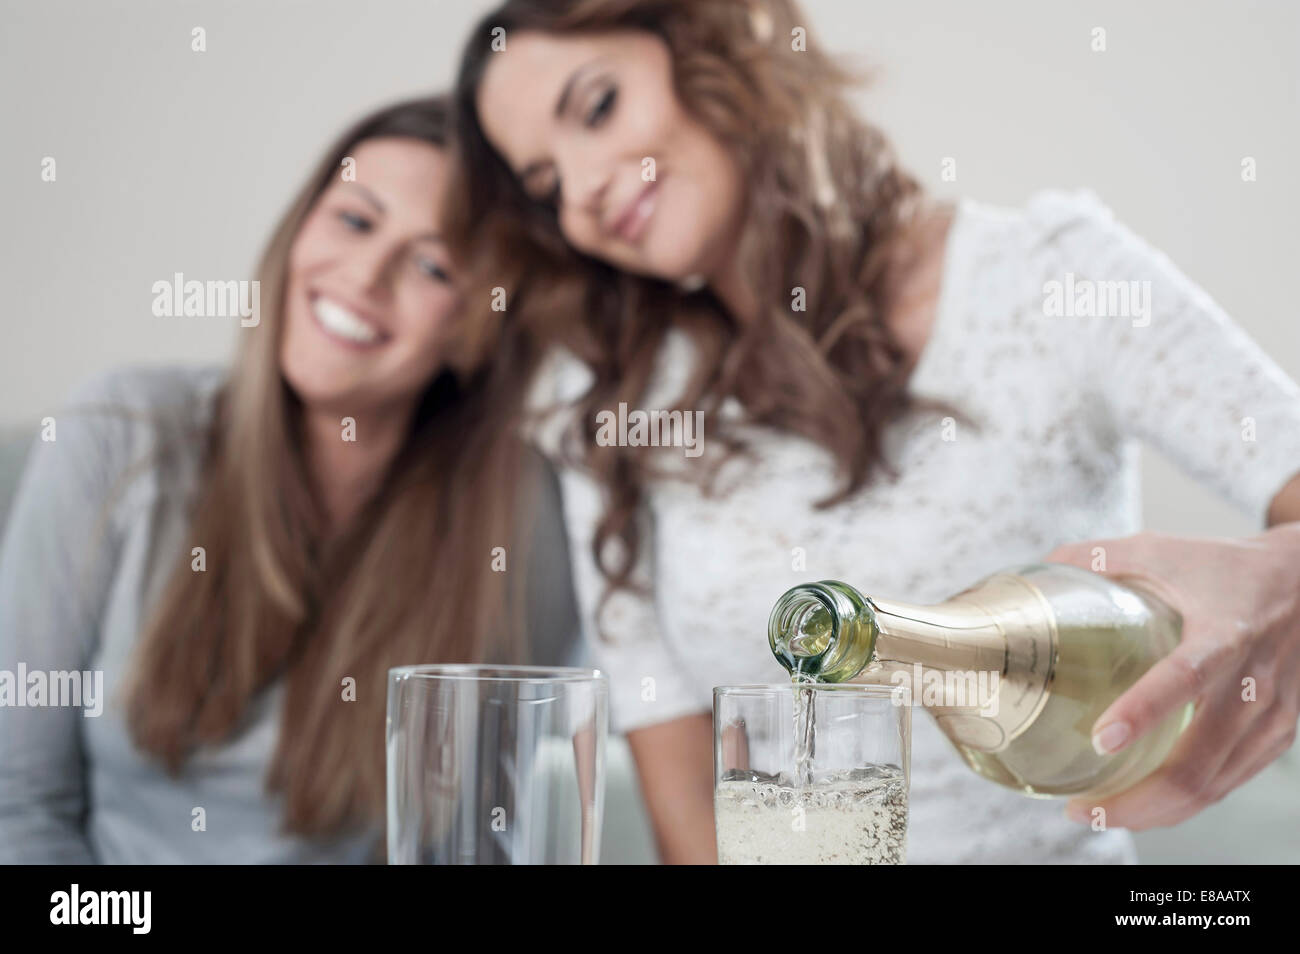 Young woman pouring champage into glasses while her female friend watching - Stock Image